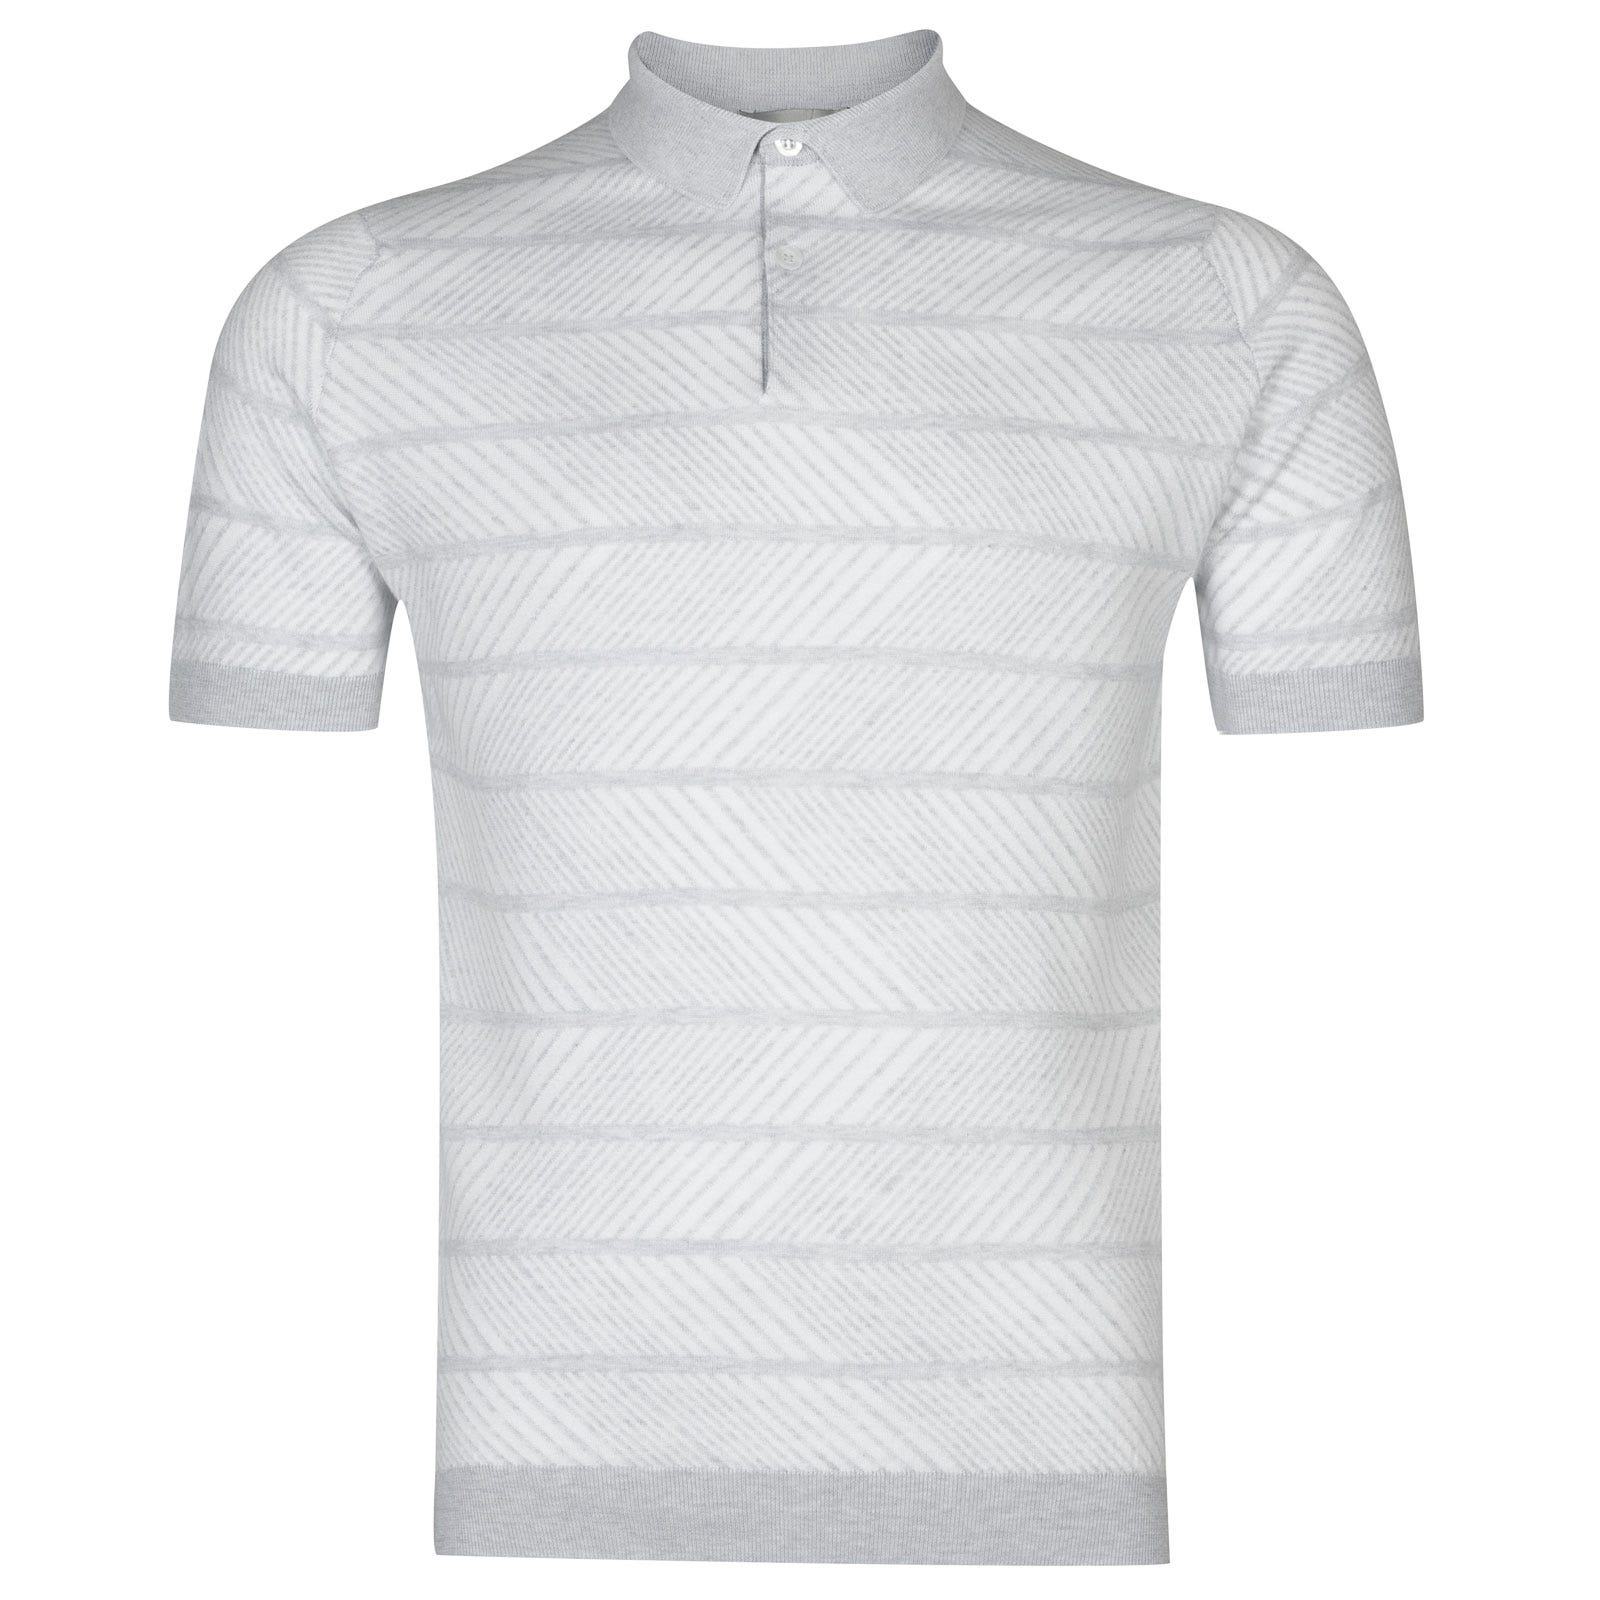 John Smedley Hermann in Feather Grey/White-Xxl